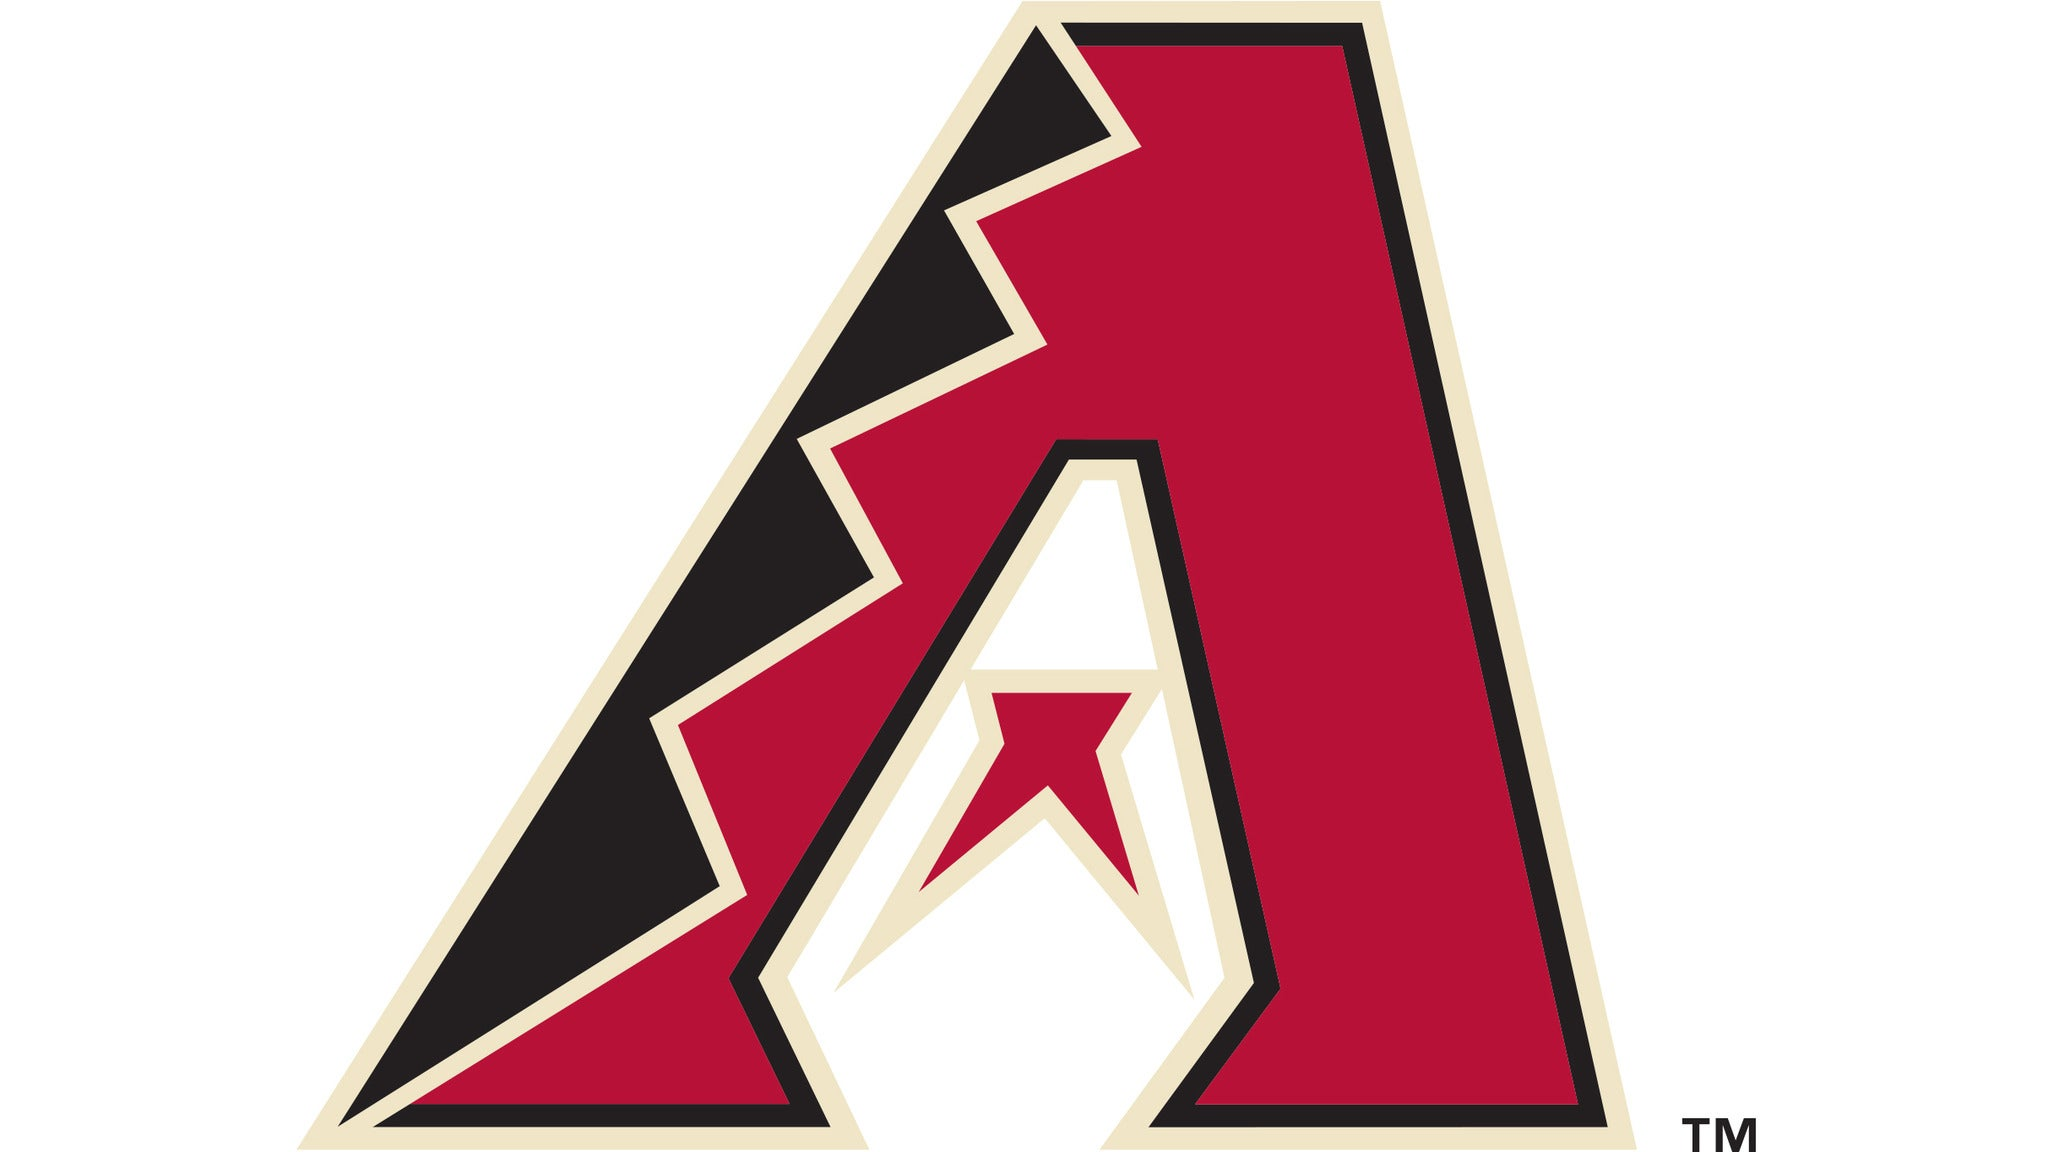 Arizona Diamondbacks vs. Cincinnati Reds at Chase Field